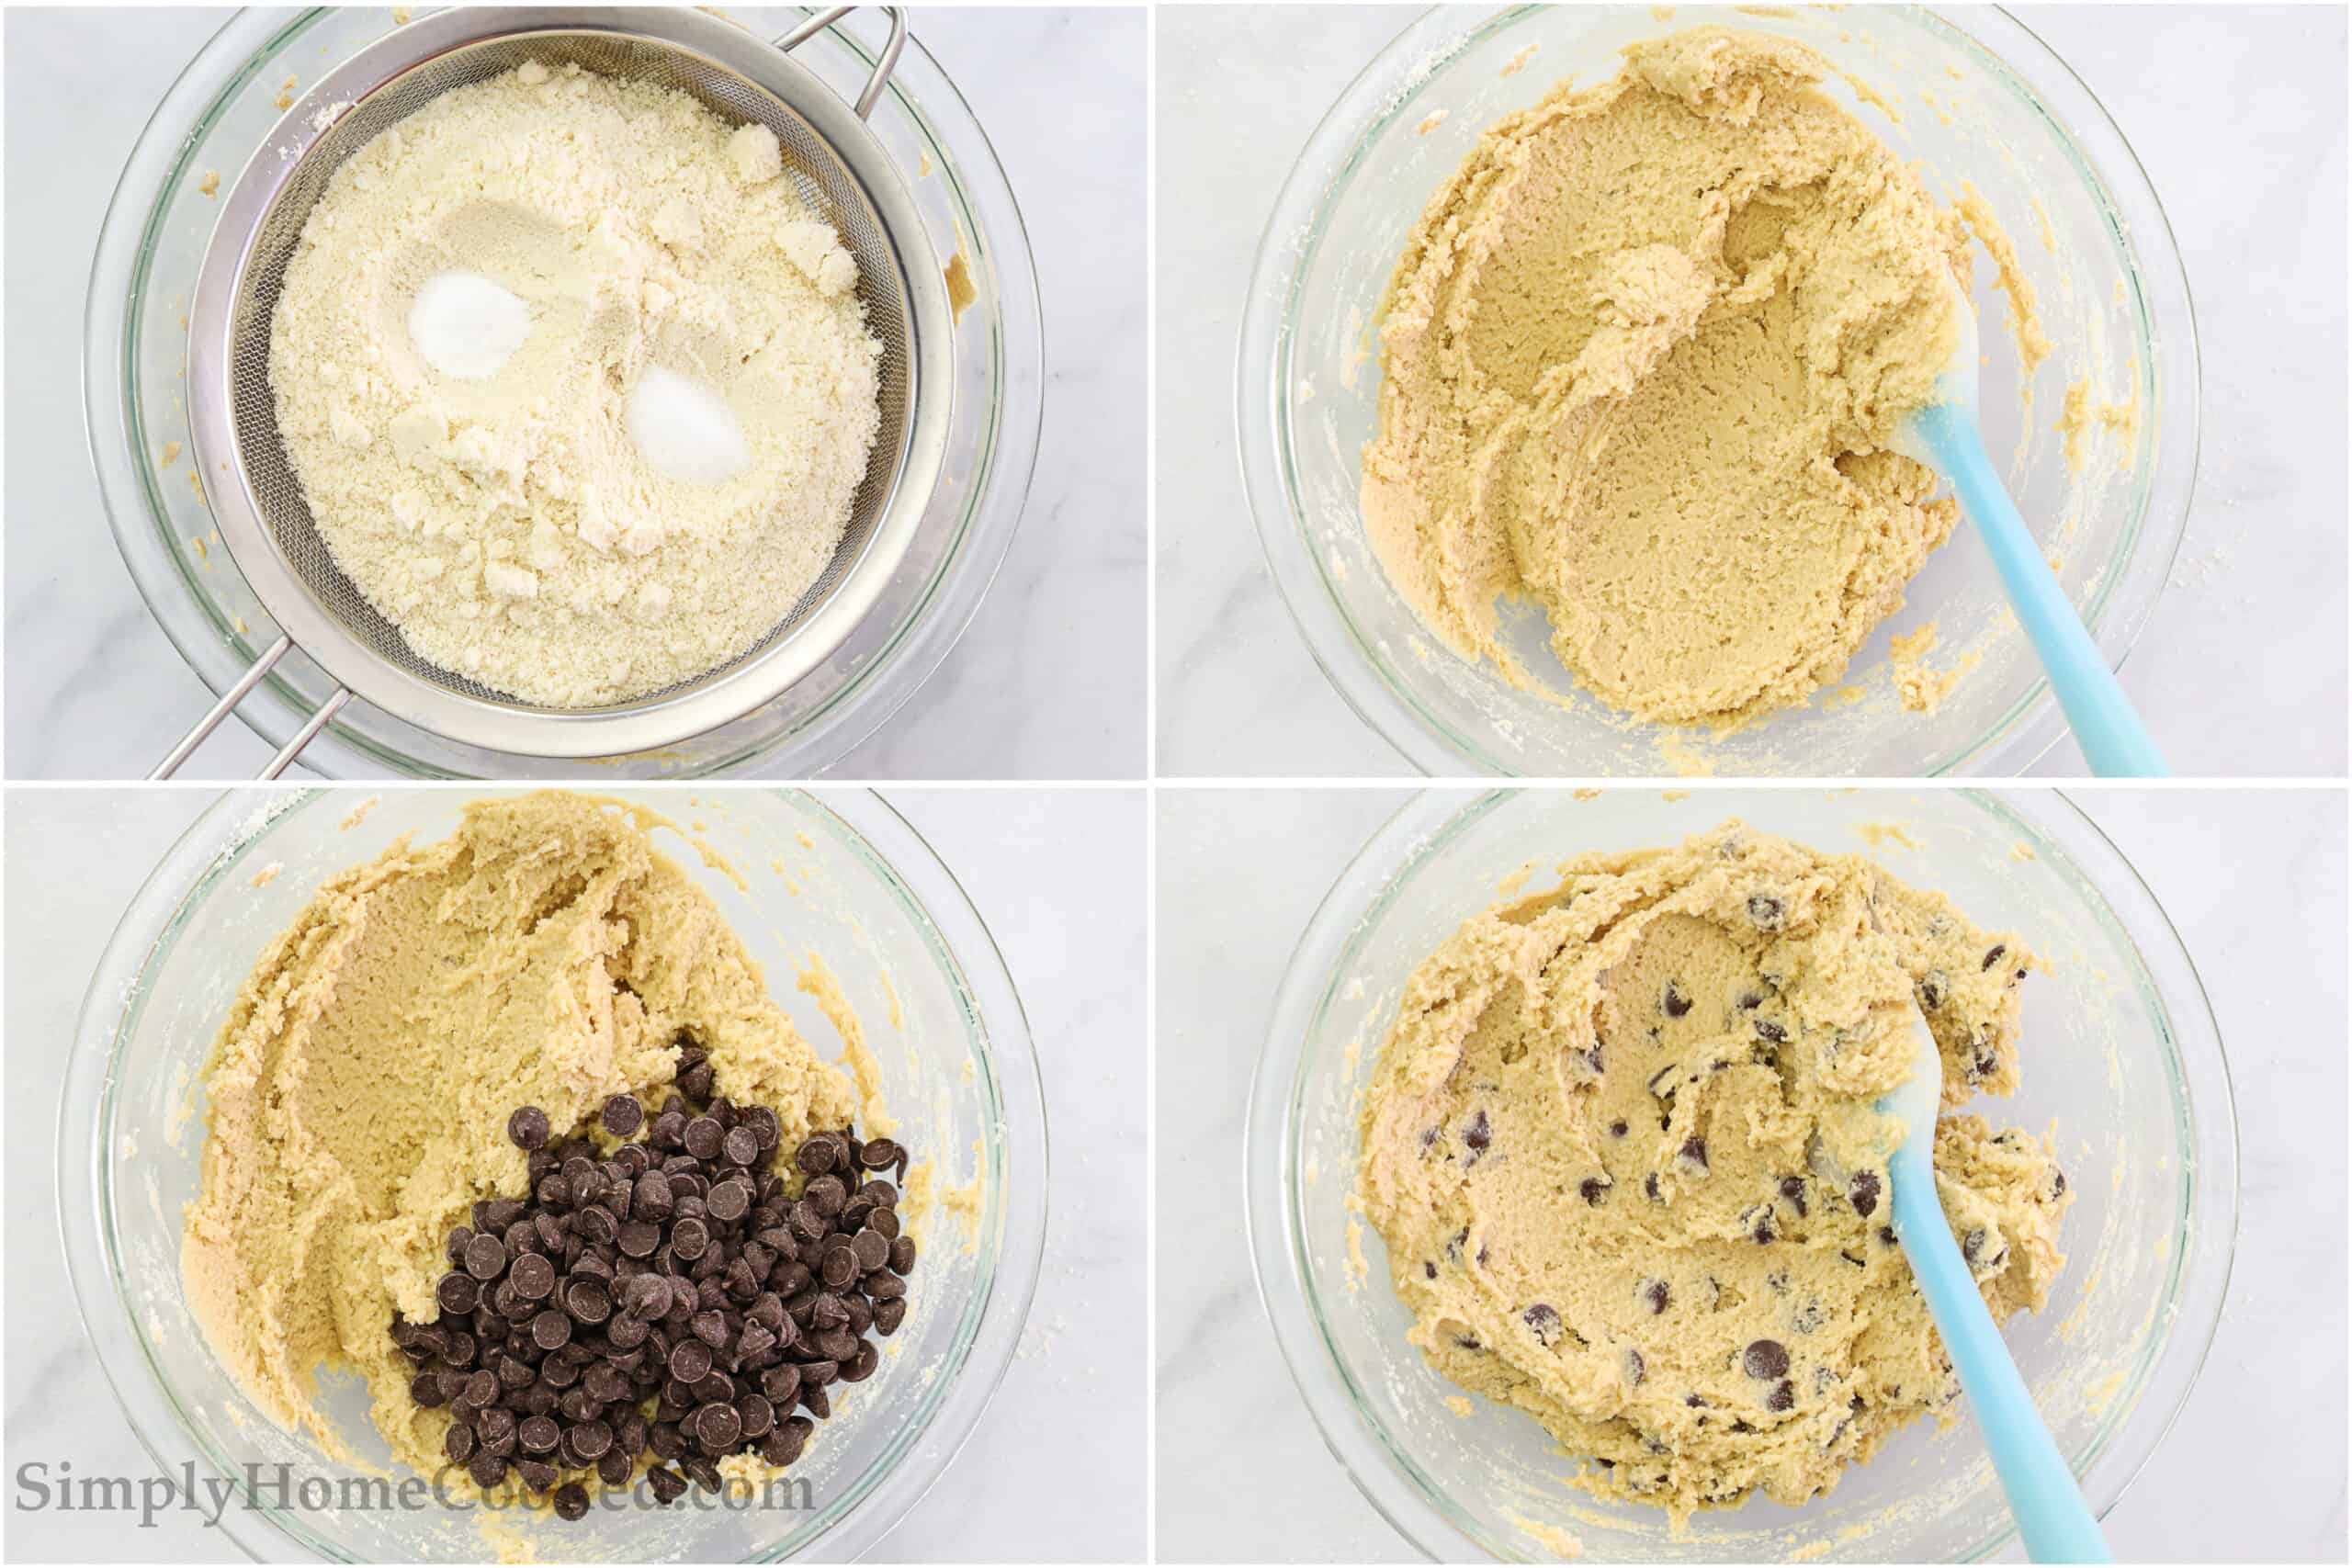 Steps to make Almond Flour Chocolate Chip Cookies, including sifting in the almond flour, salt, and baking soda, then mixing with a spatula before adding the chocolate chips and mixing again.